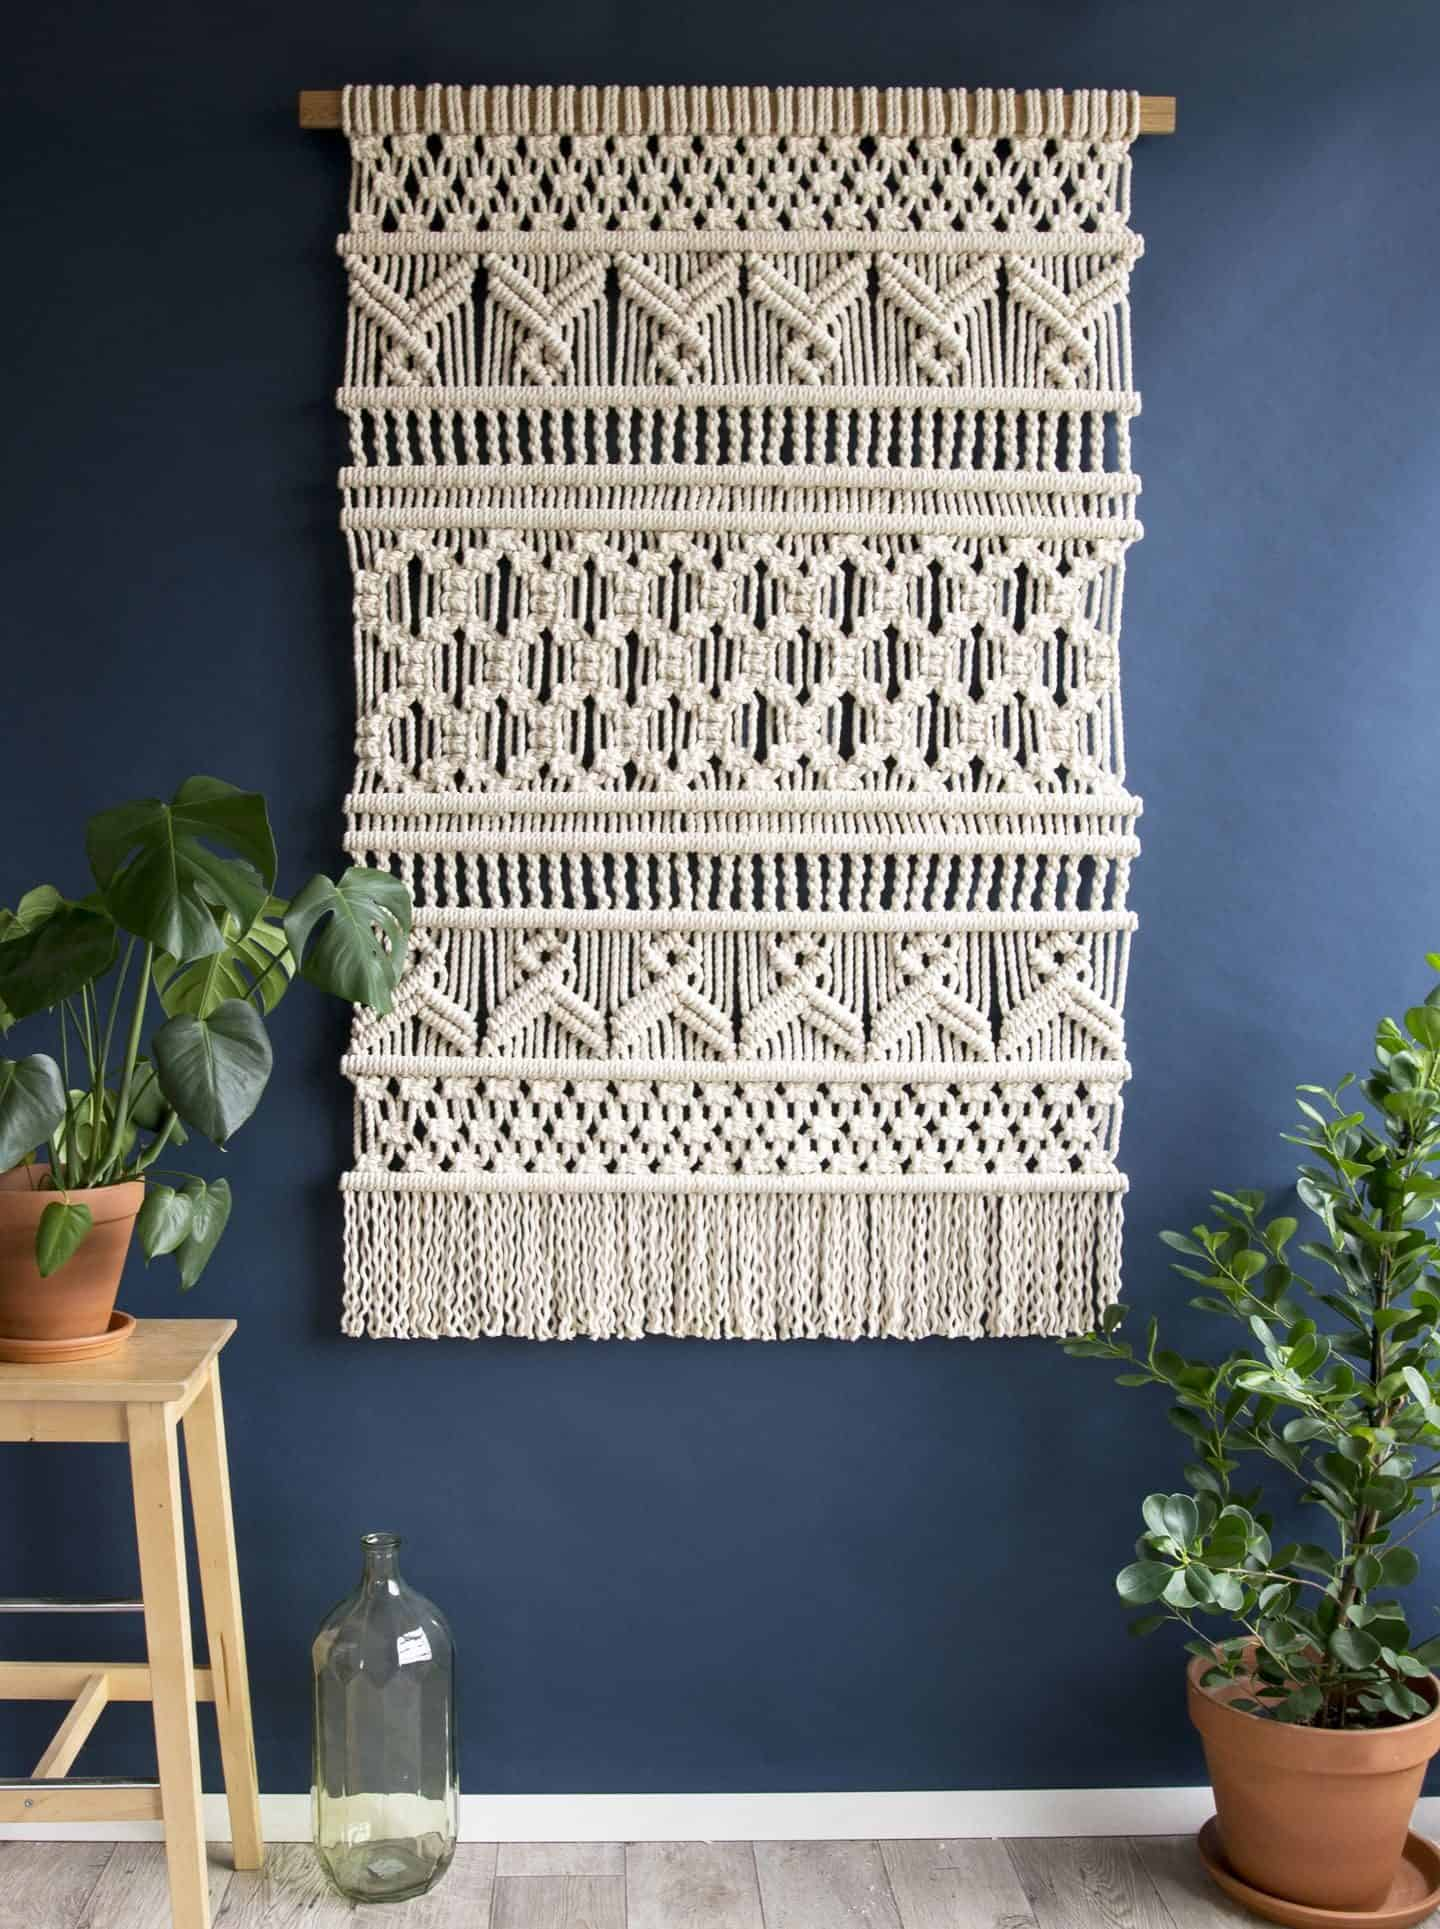 TEDDY AND WOOL contemporary woven wall hanging - Vivian 1